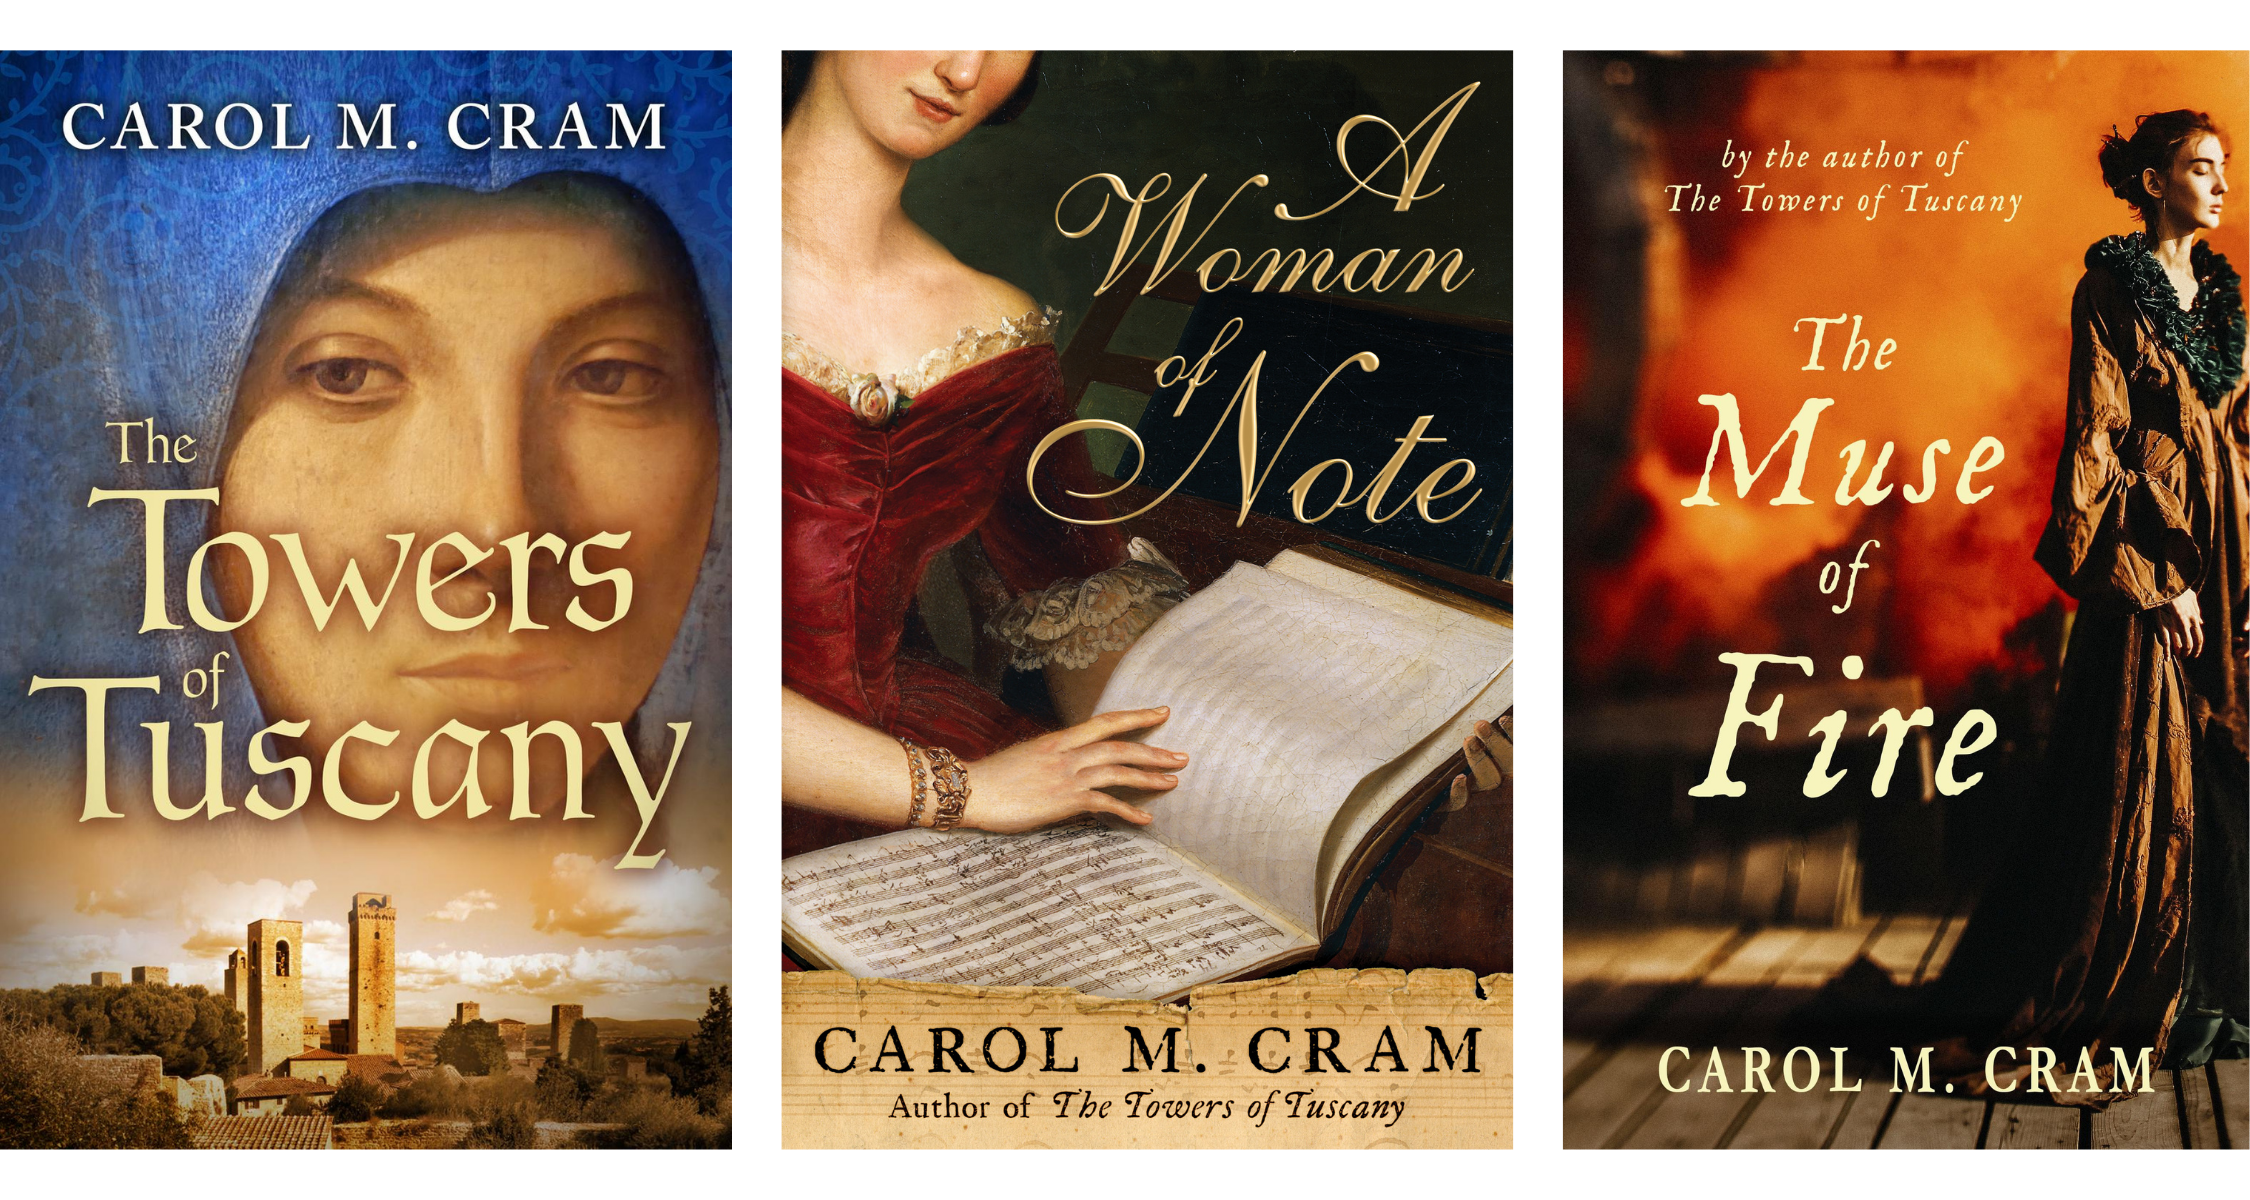 Women in the Arts Trilogy